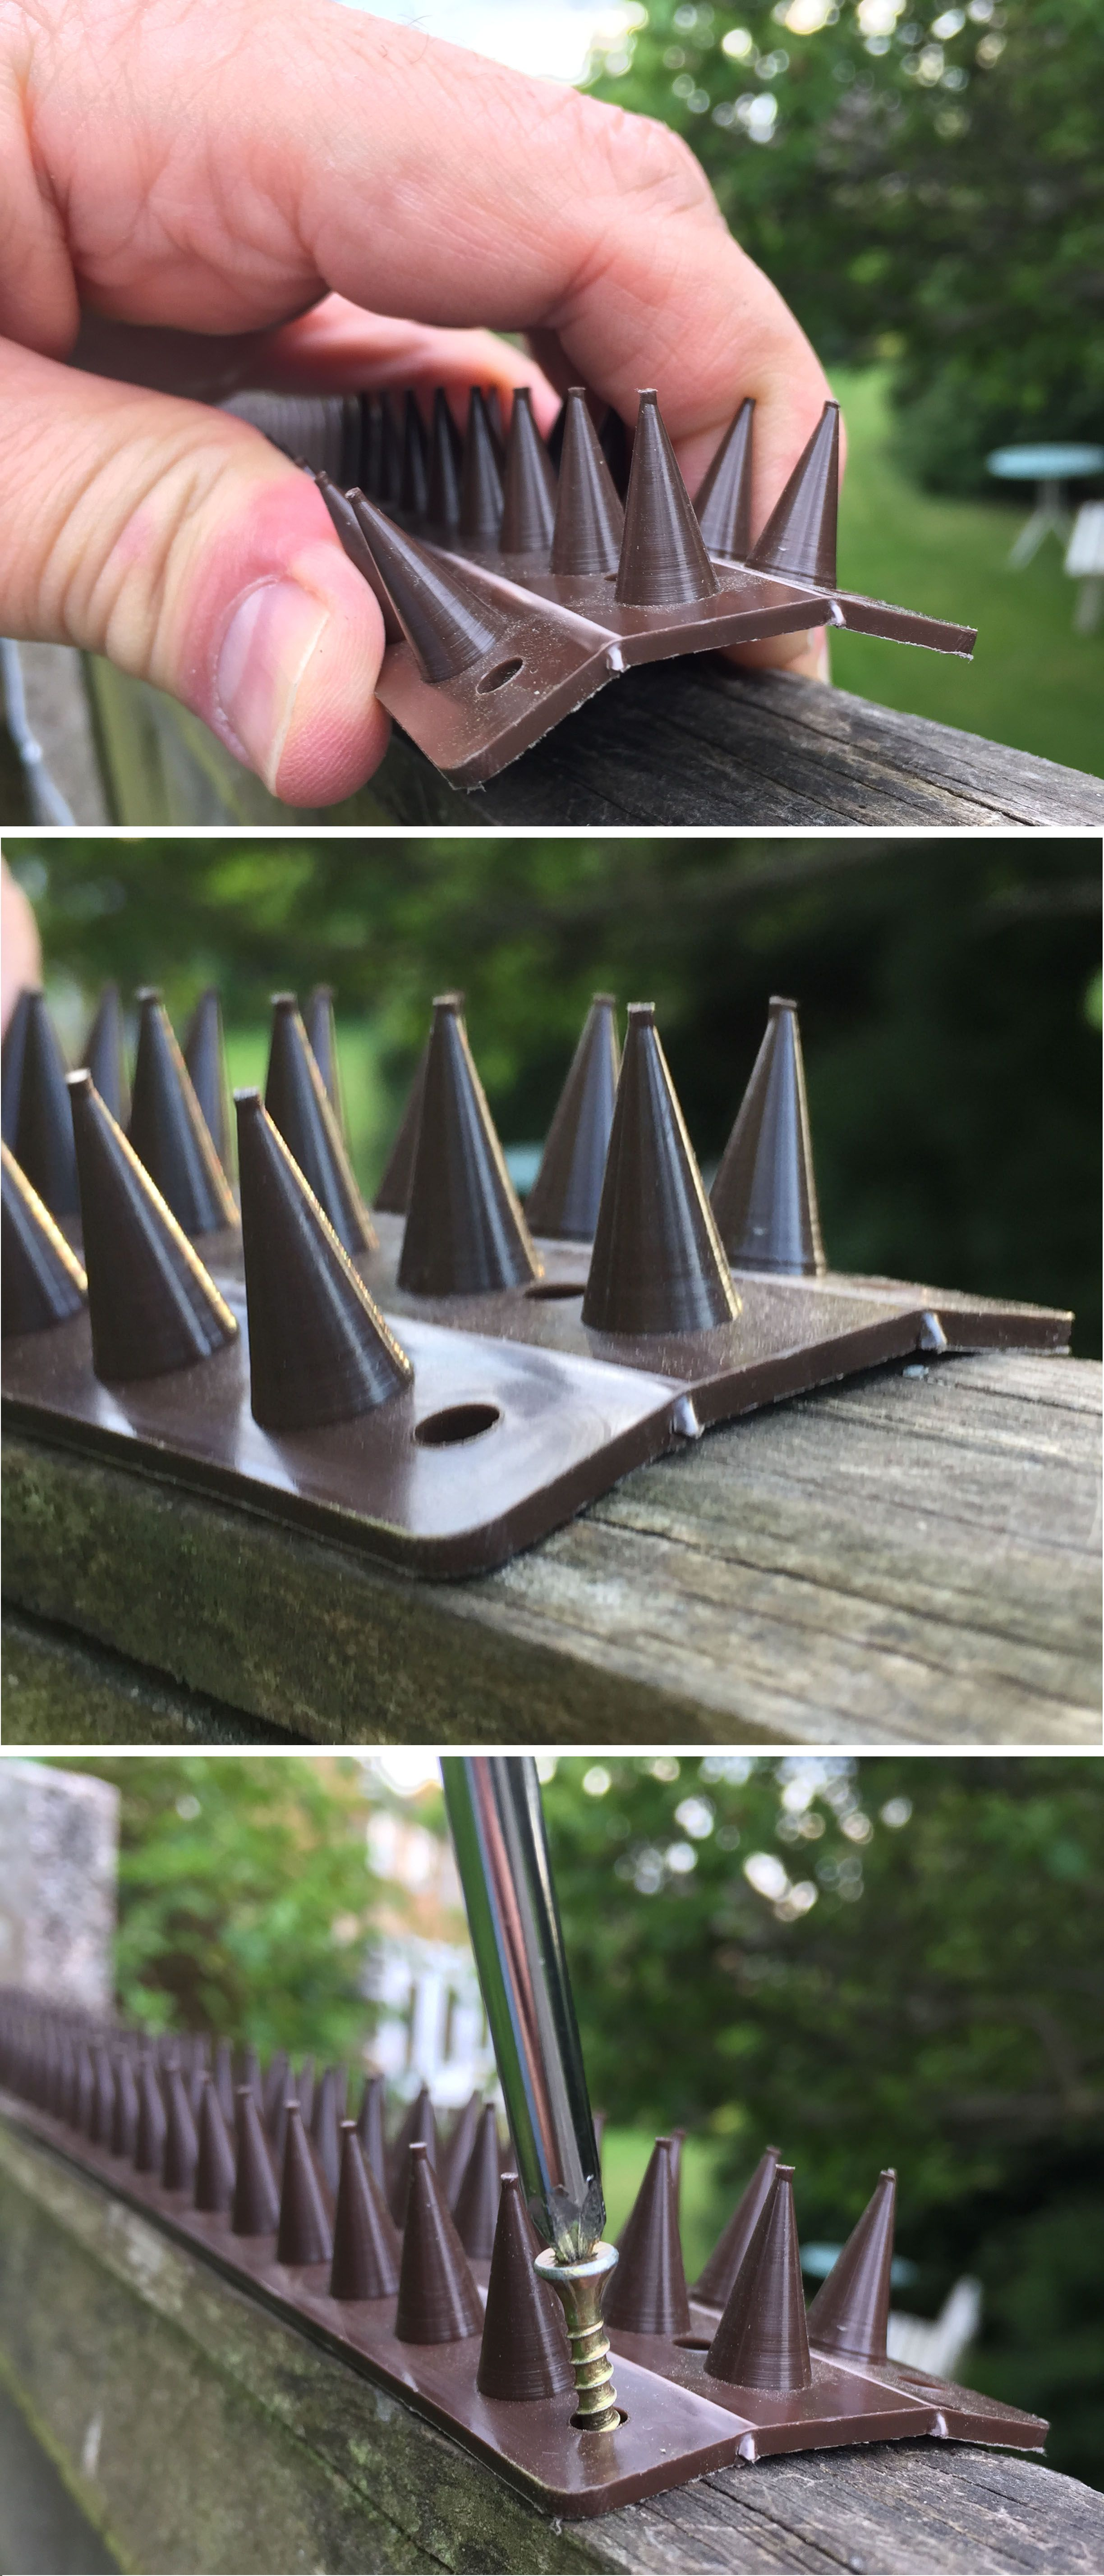 Prikka Strip Garden Security Spikes Are Easy To Fit To Fence Tops